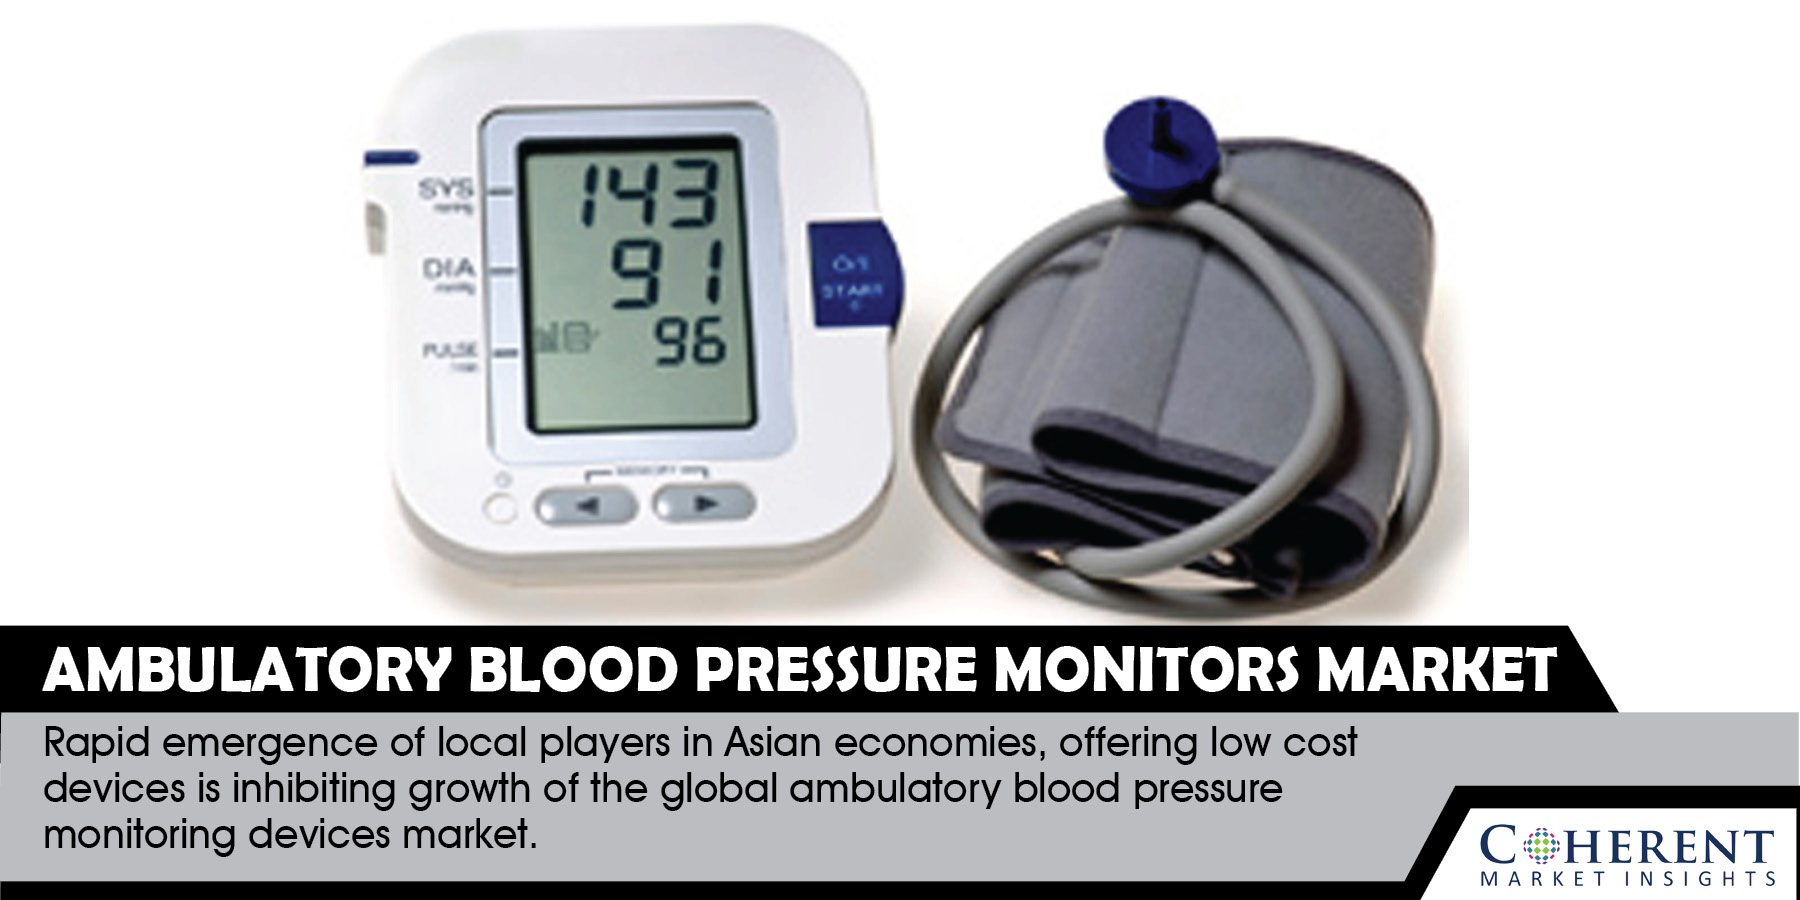 At 8.0% CAGR, Ambulatory Blood Pressure Monitors Market to Surge Past US$ 1.9 Billion by 2025